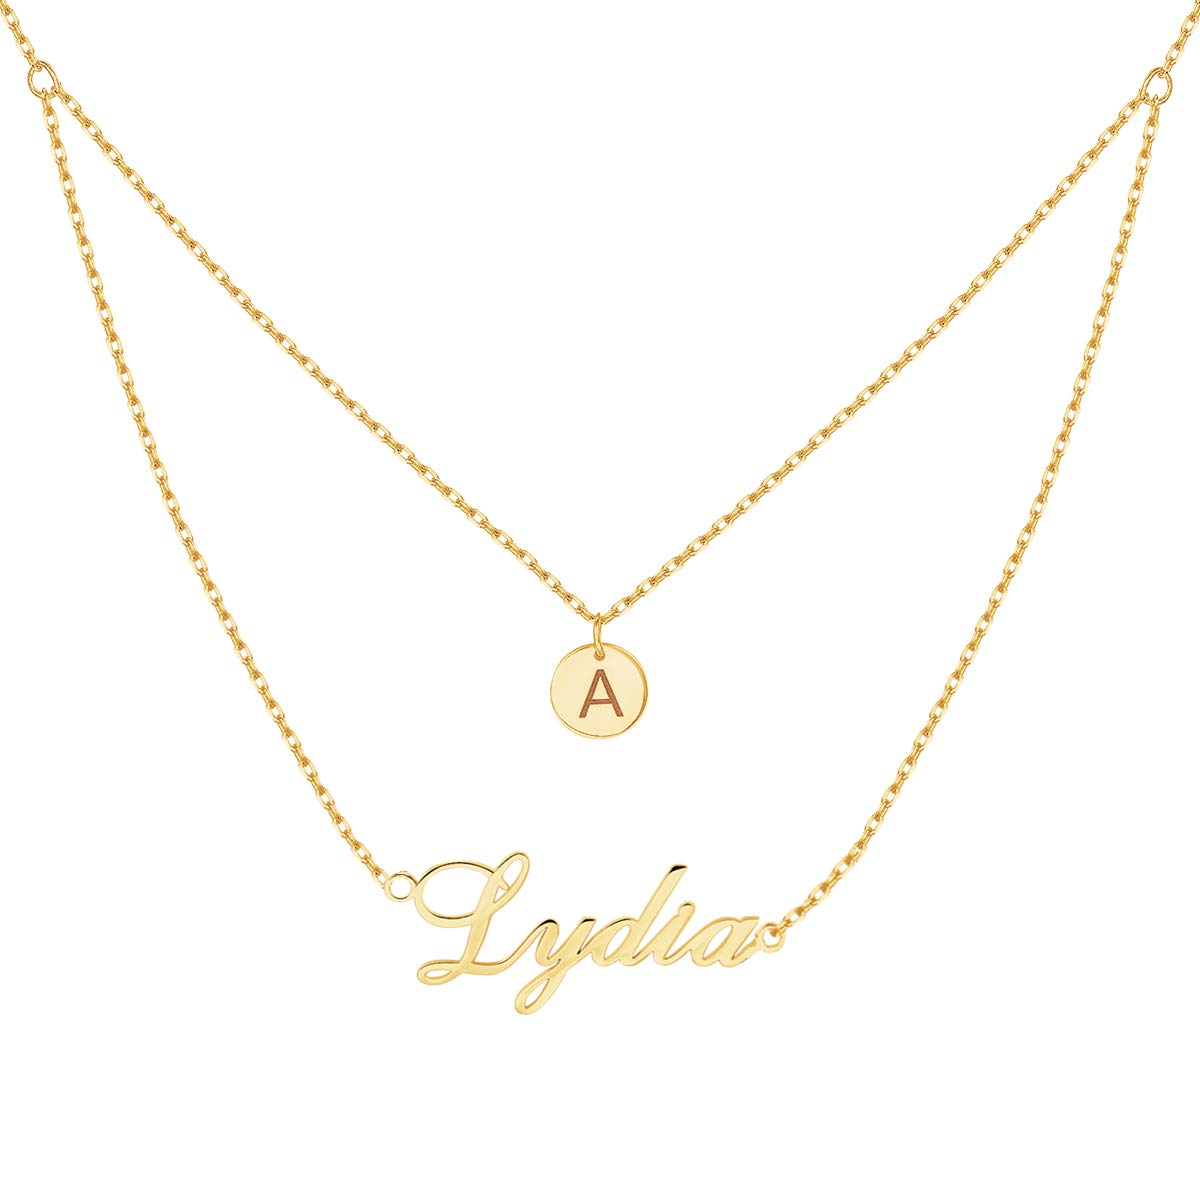 Amazon.com  Yoke Style Personalized Layered Name Necklace with Disc ... 42beef08b6